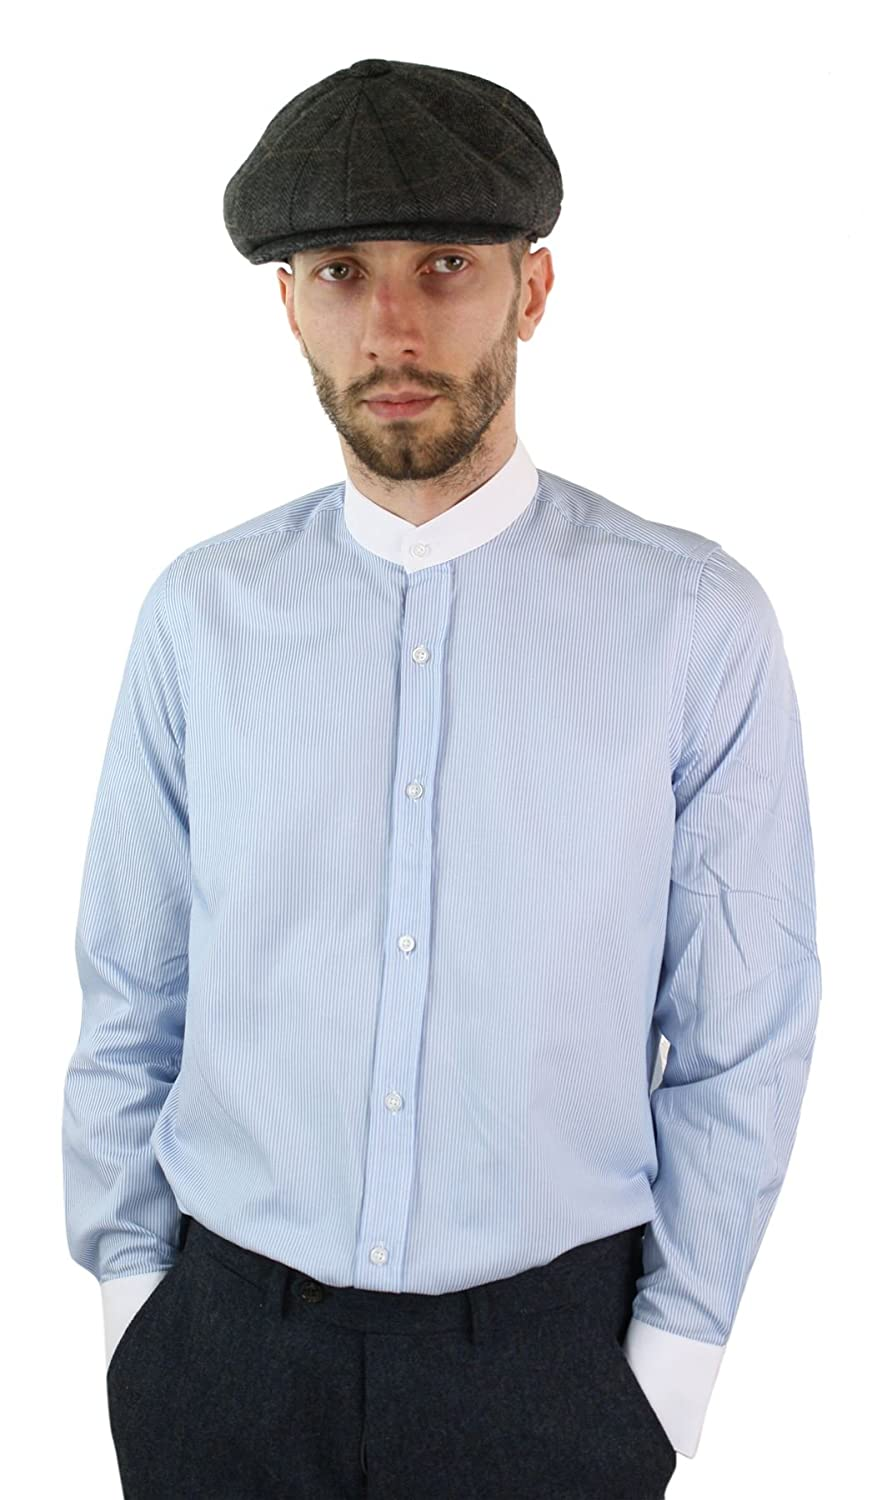 Mens Vintage Shirts – Casual, Dress, T-shirts, Polos Mens Retro Peaky Blinders Removable Collar Stripe Grandad Nehru Collarless Shirt - Light-Blue S(36-38